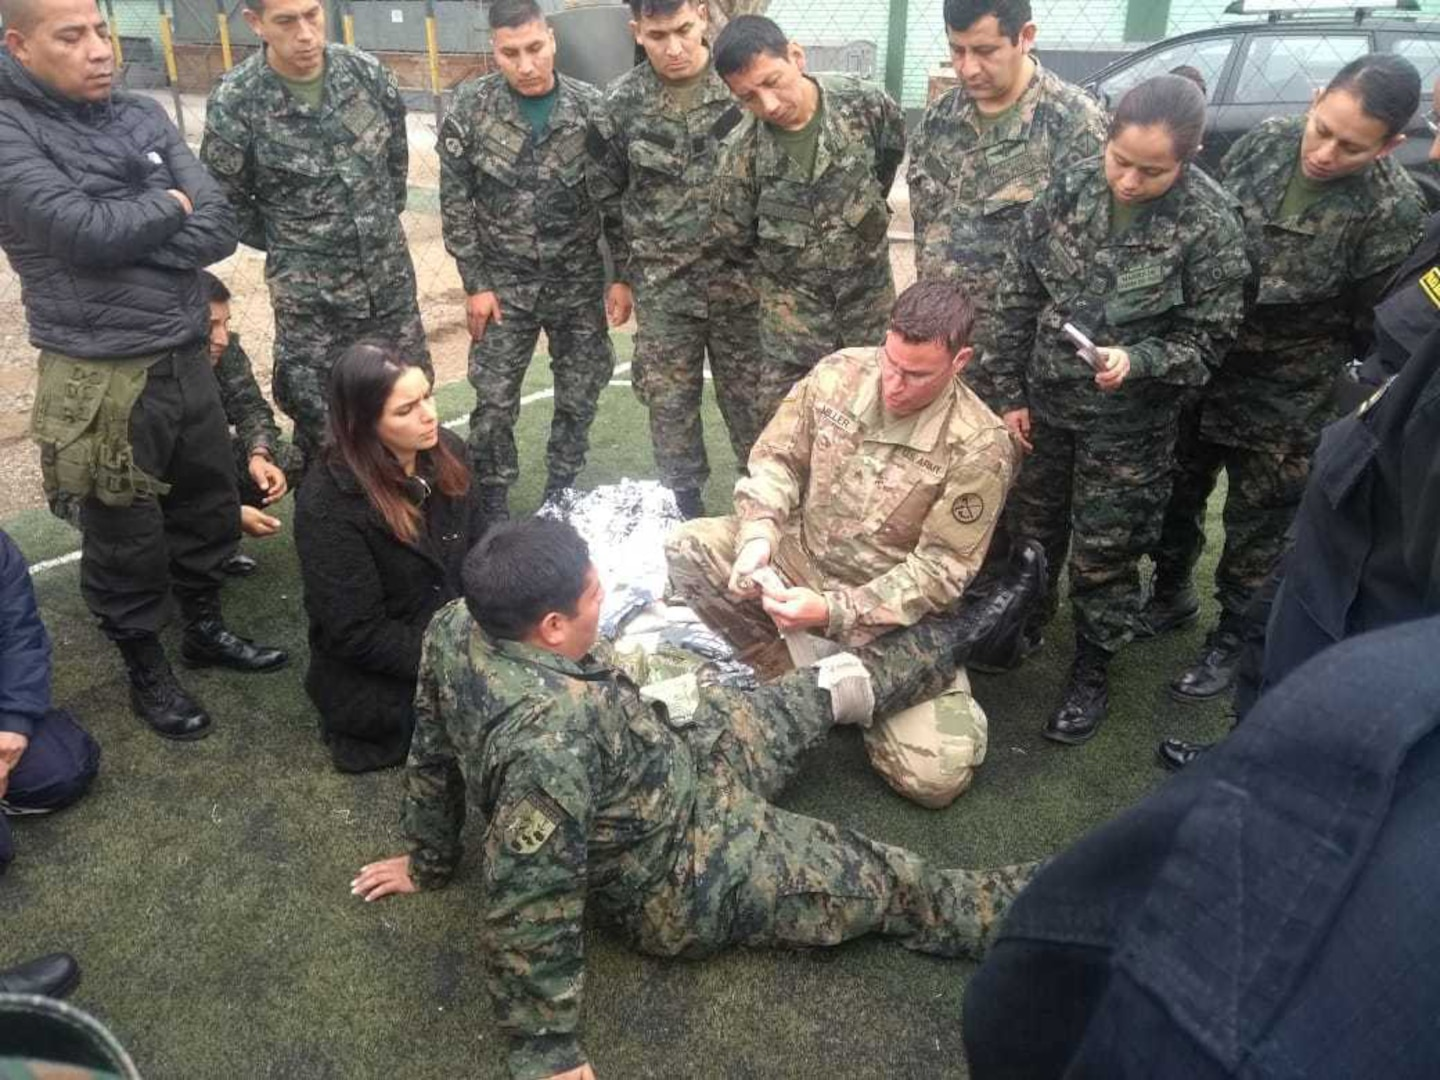 Sgt. Brad Miller, a medical readiness non-commissioned officer with the West Virginia Army National Guard (WVARNG) medical detachment, provides training on tactical casualty combat care (TCCC) to members of the Peruvian Armed Forces during a hands-on training held July 2, 2019, in Lima, Peru.